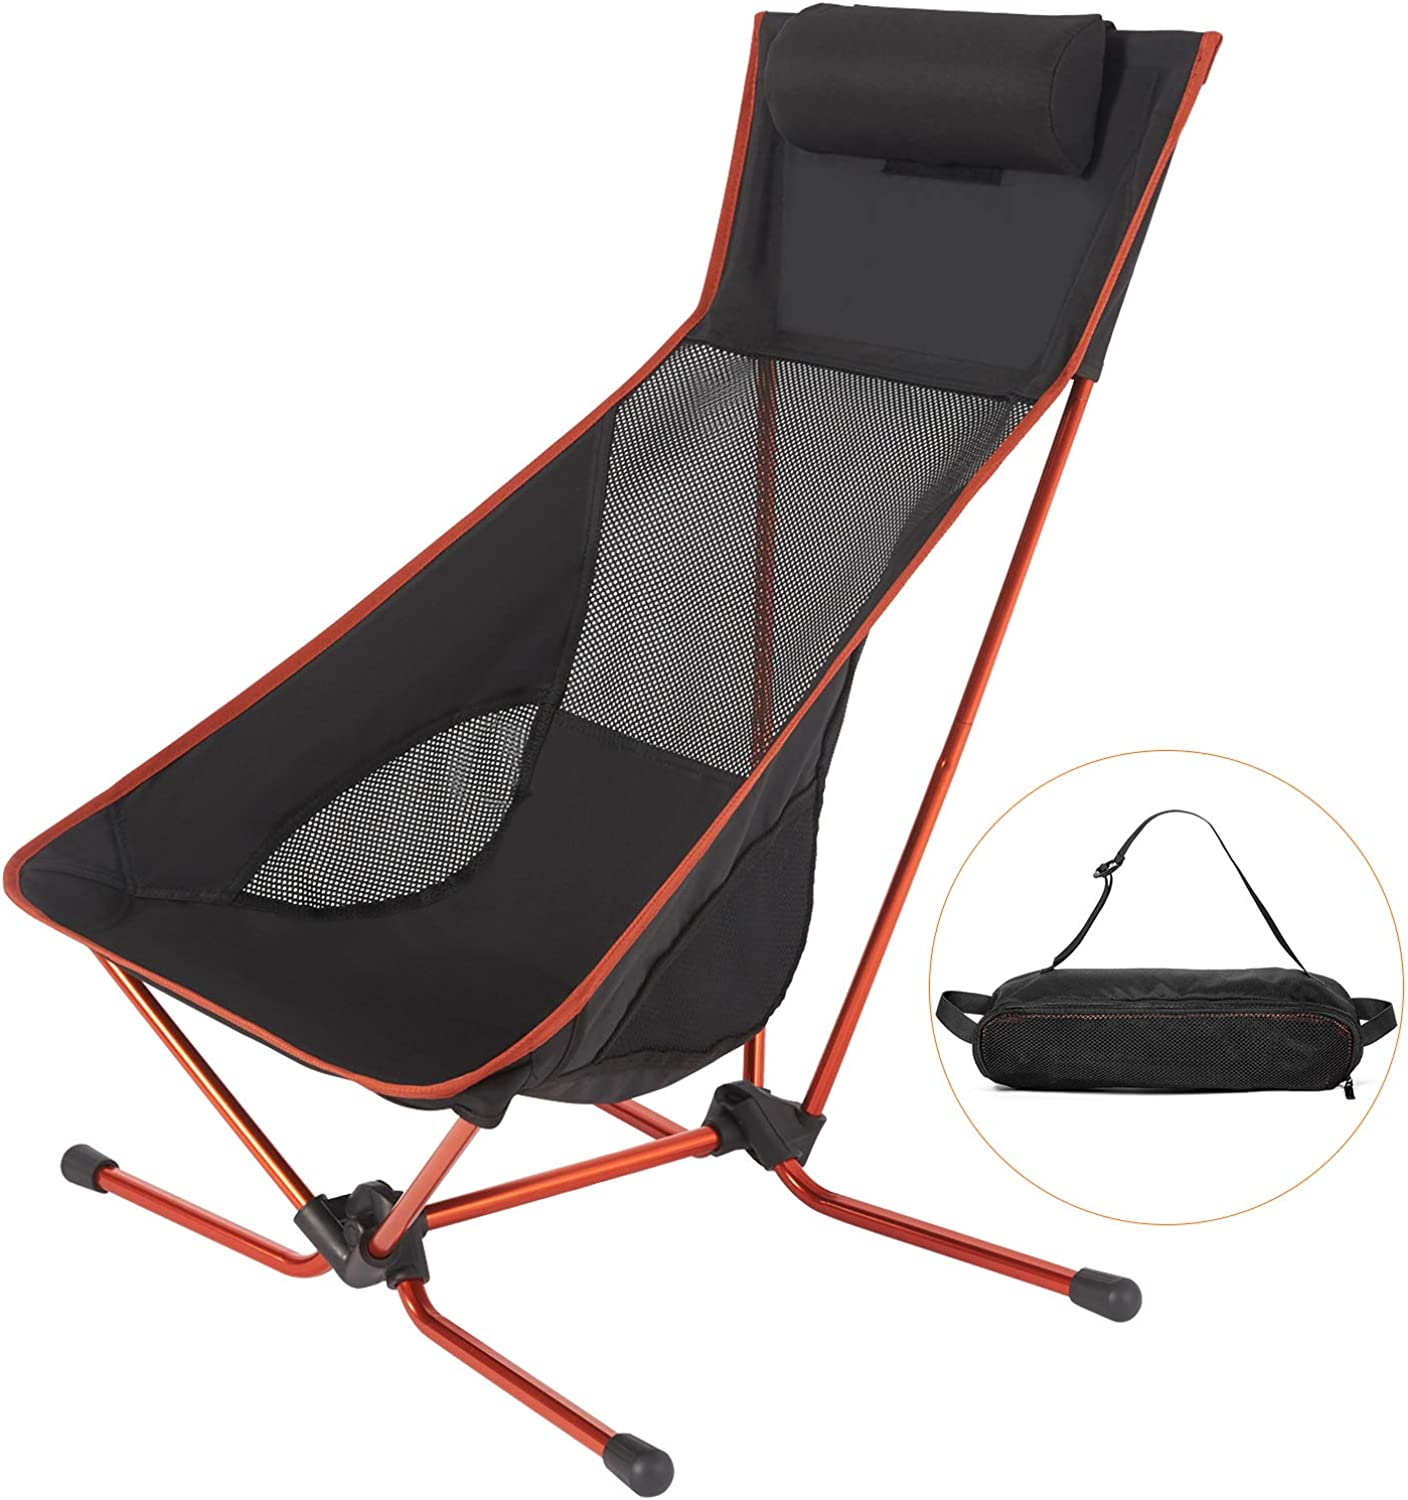 Lightweight Folding Camping Chair with Headrest, Compact for Backpacking Picnic Beach Festival Hiking with Carry BagMax Load Bearing  300LB